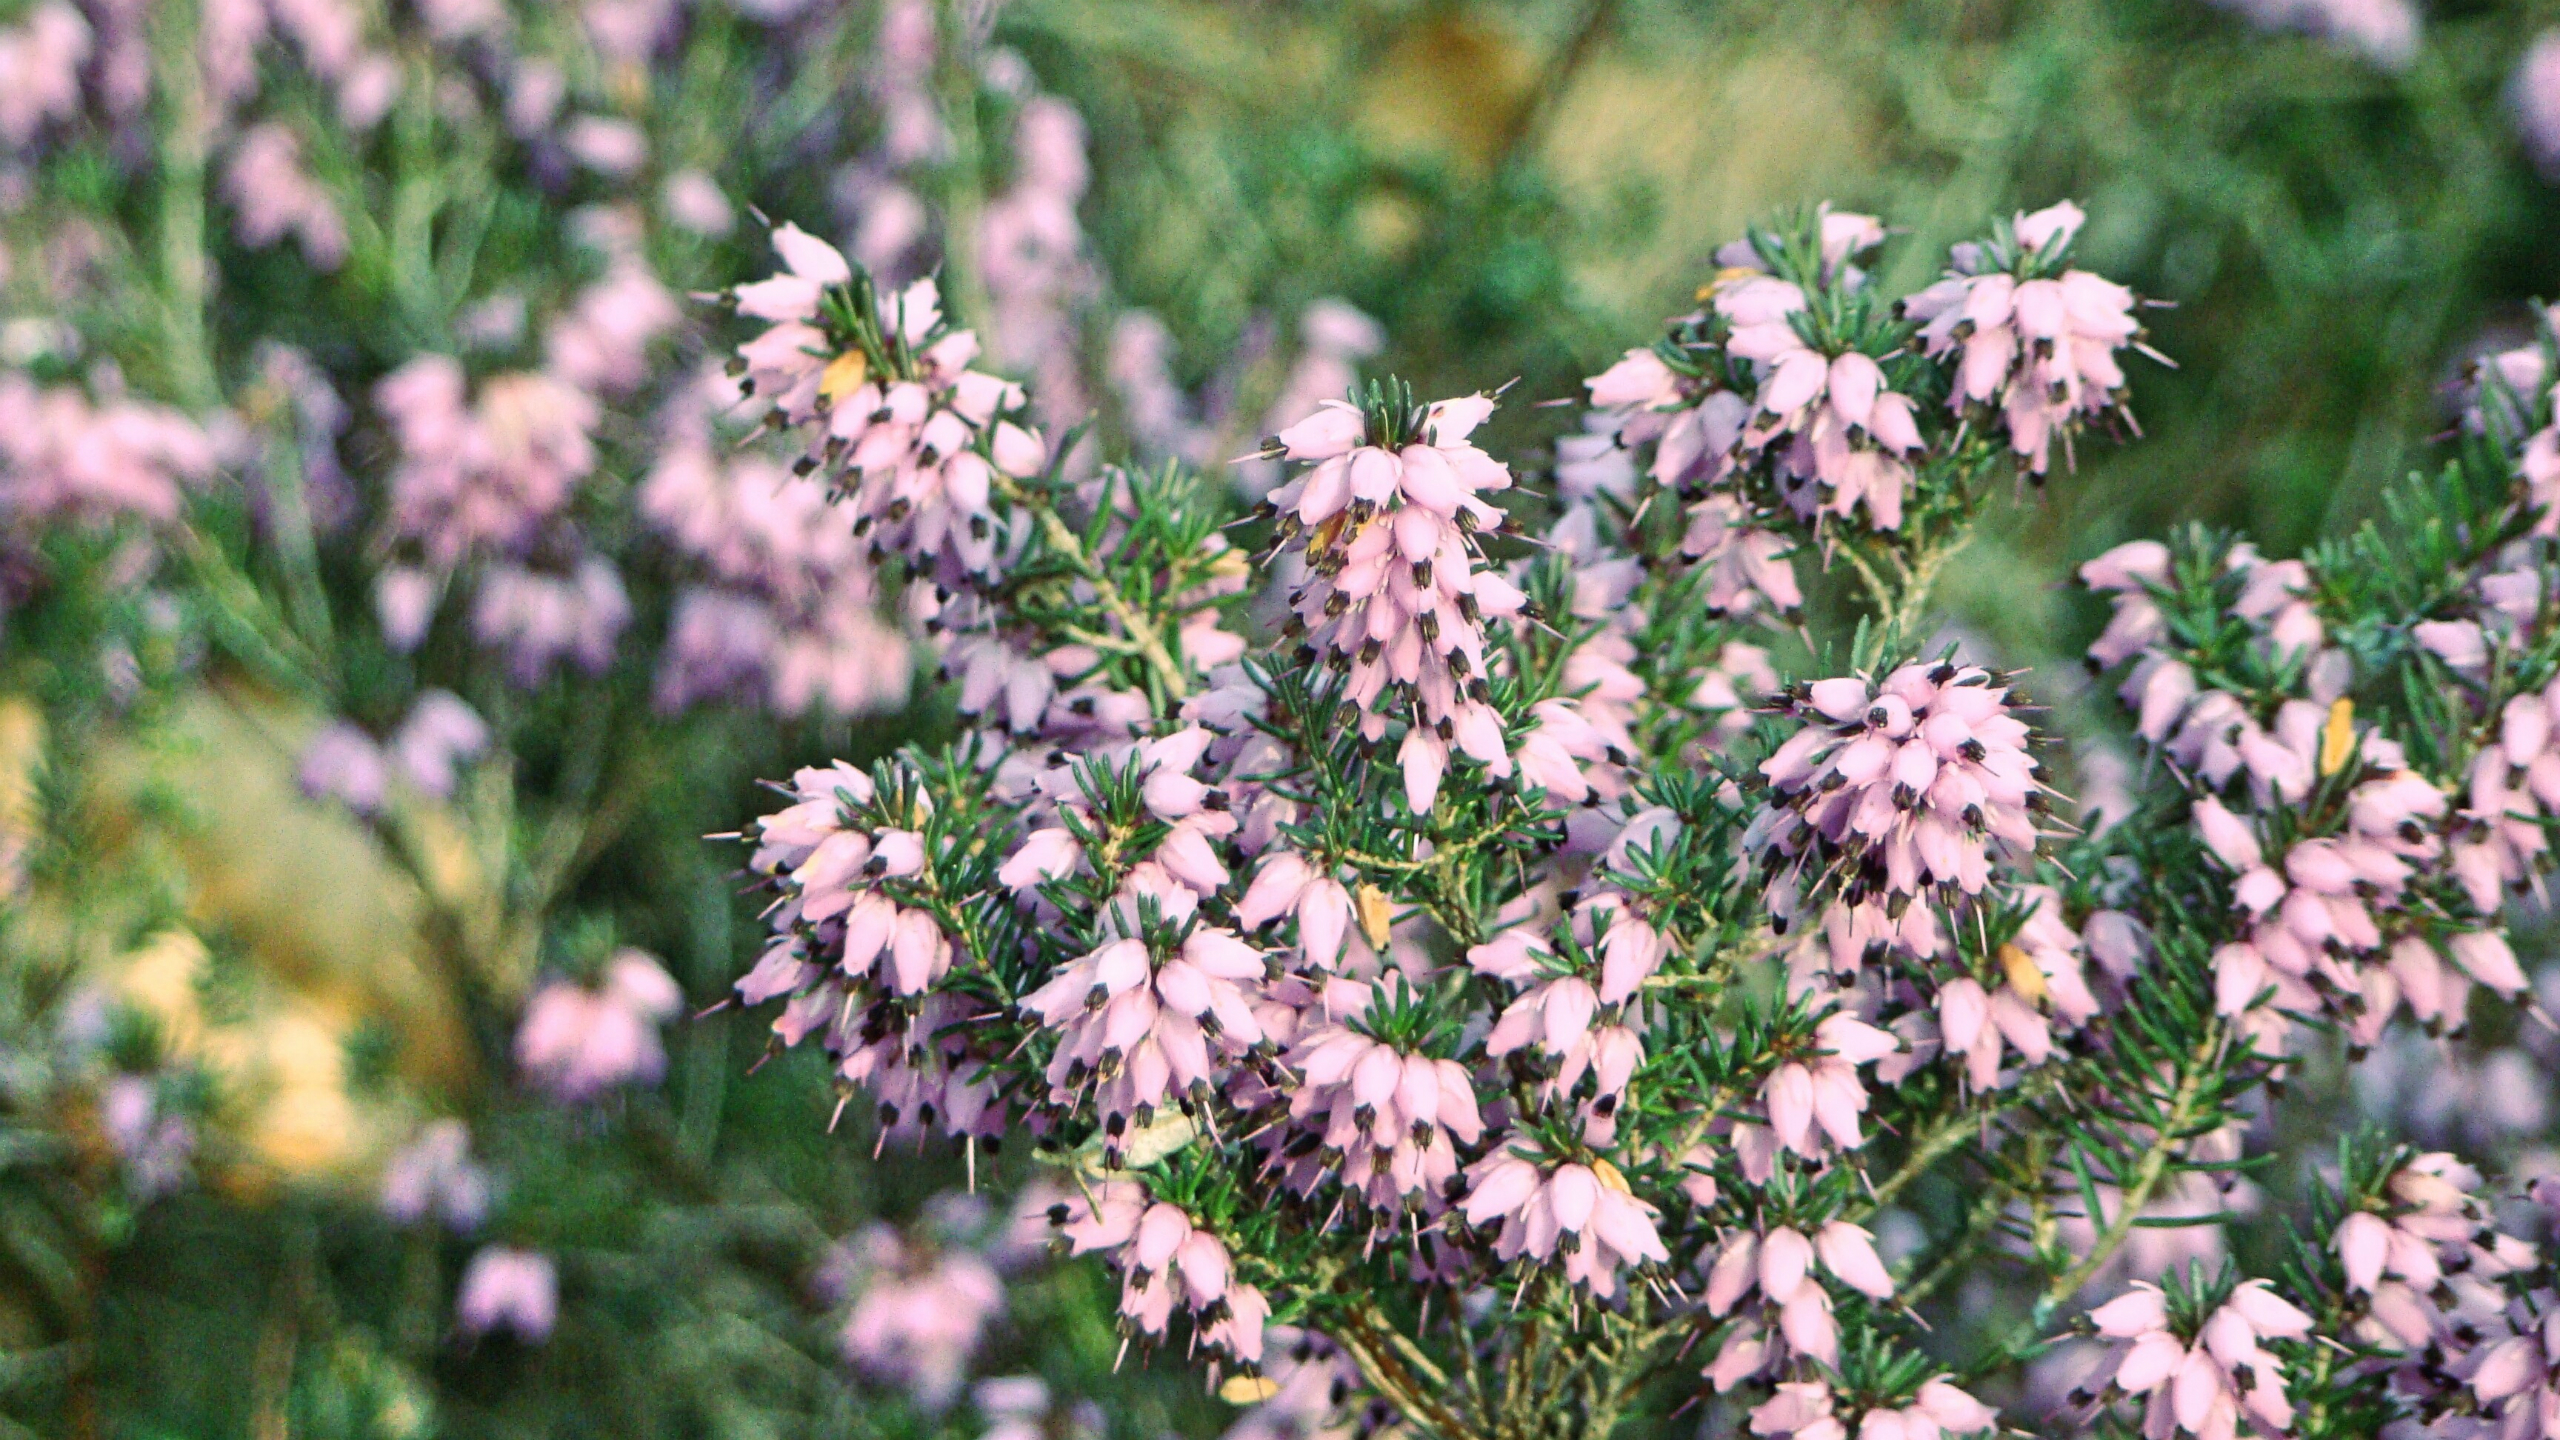 Stock images—2560×1440—Flowers—31—Heather